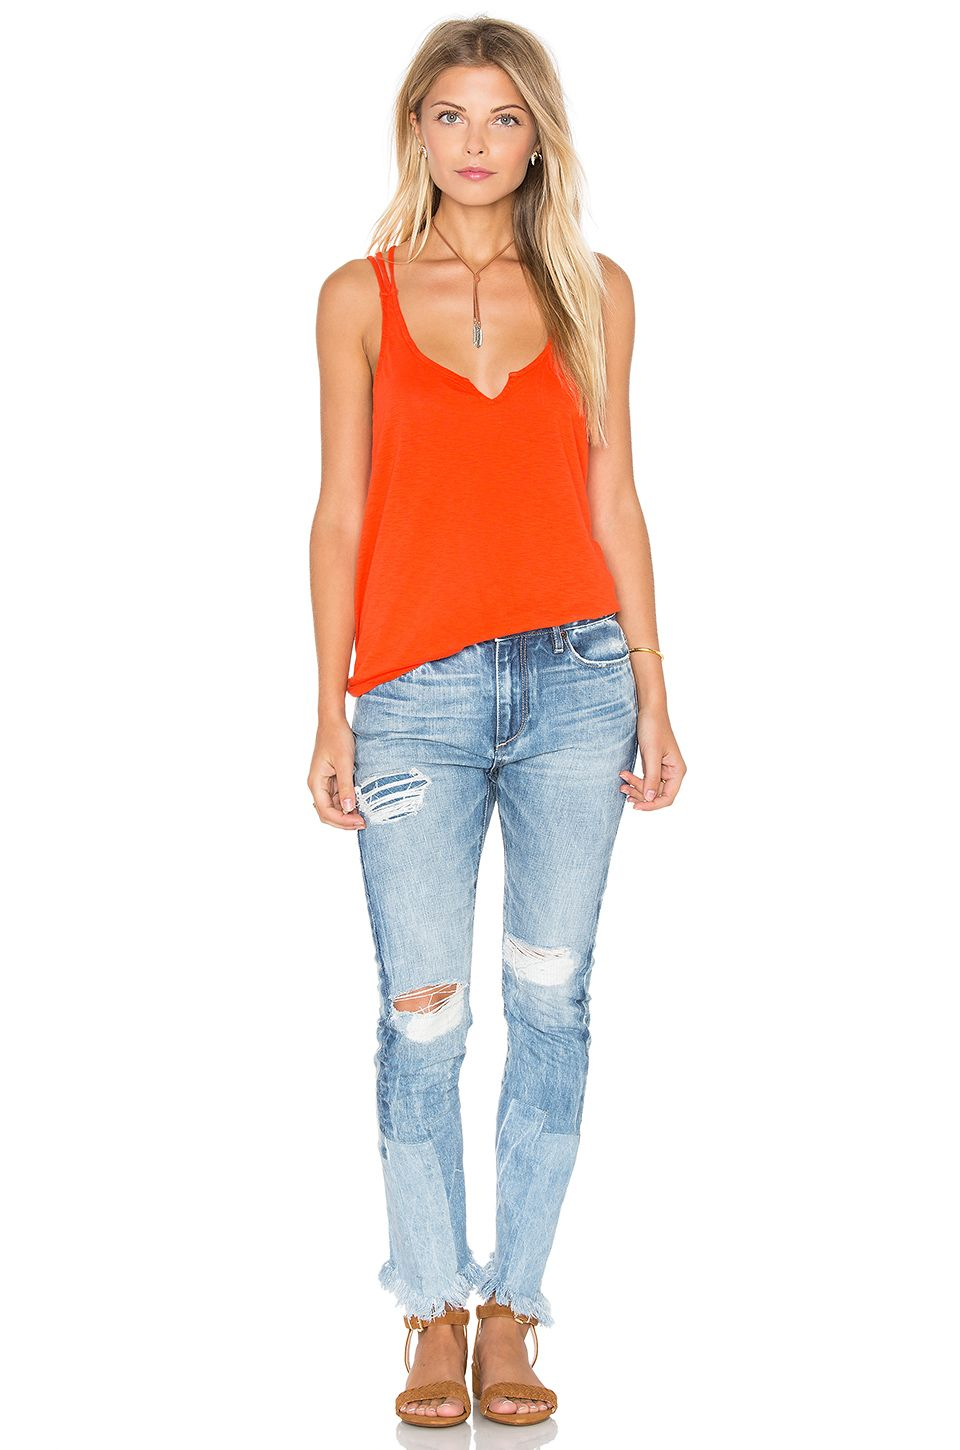 New arrivals revolve with images michael stars